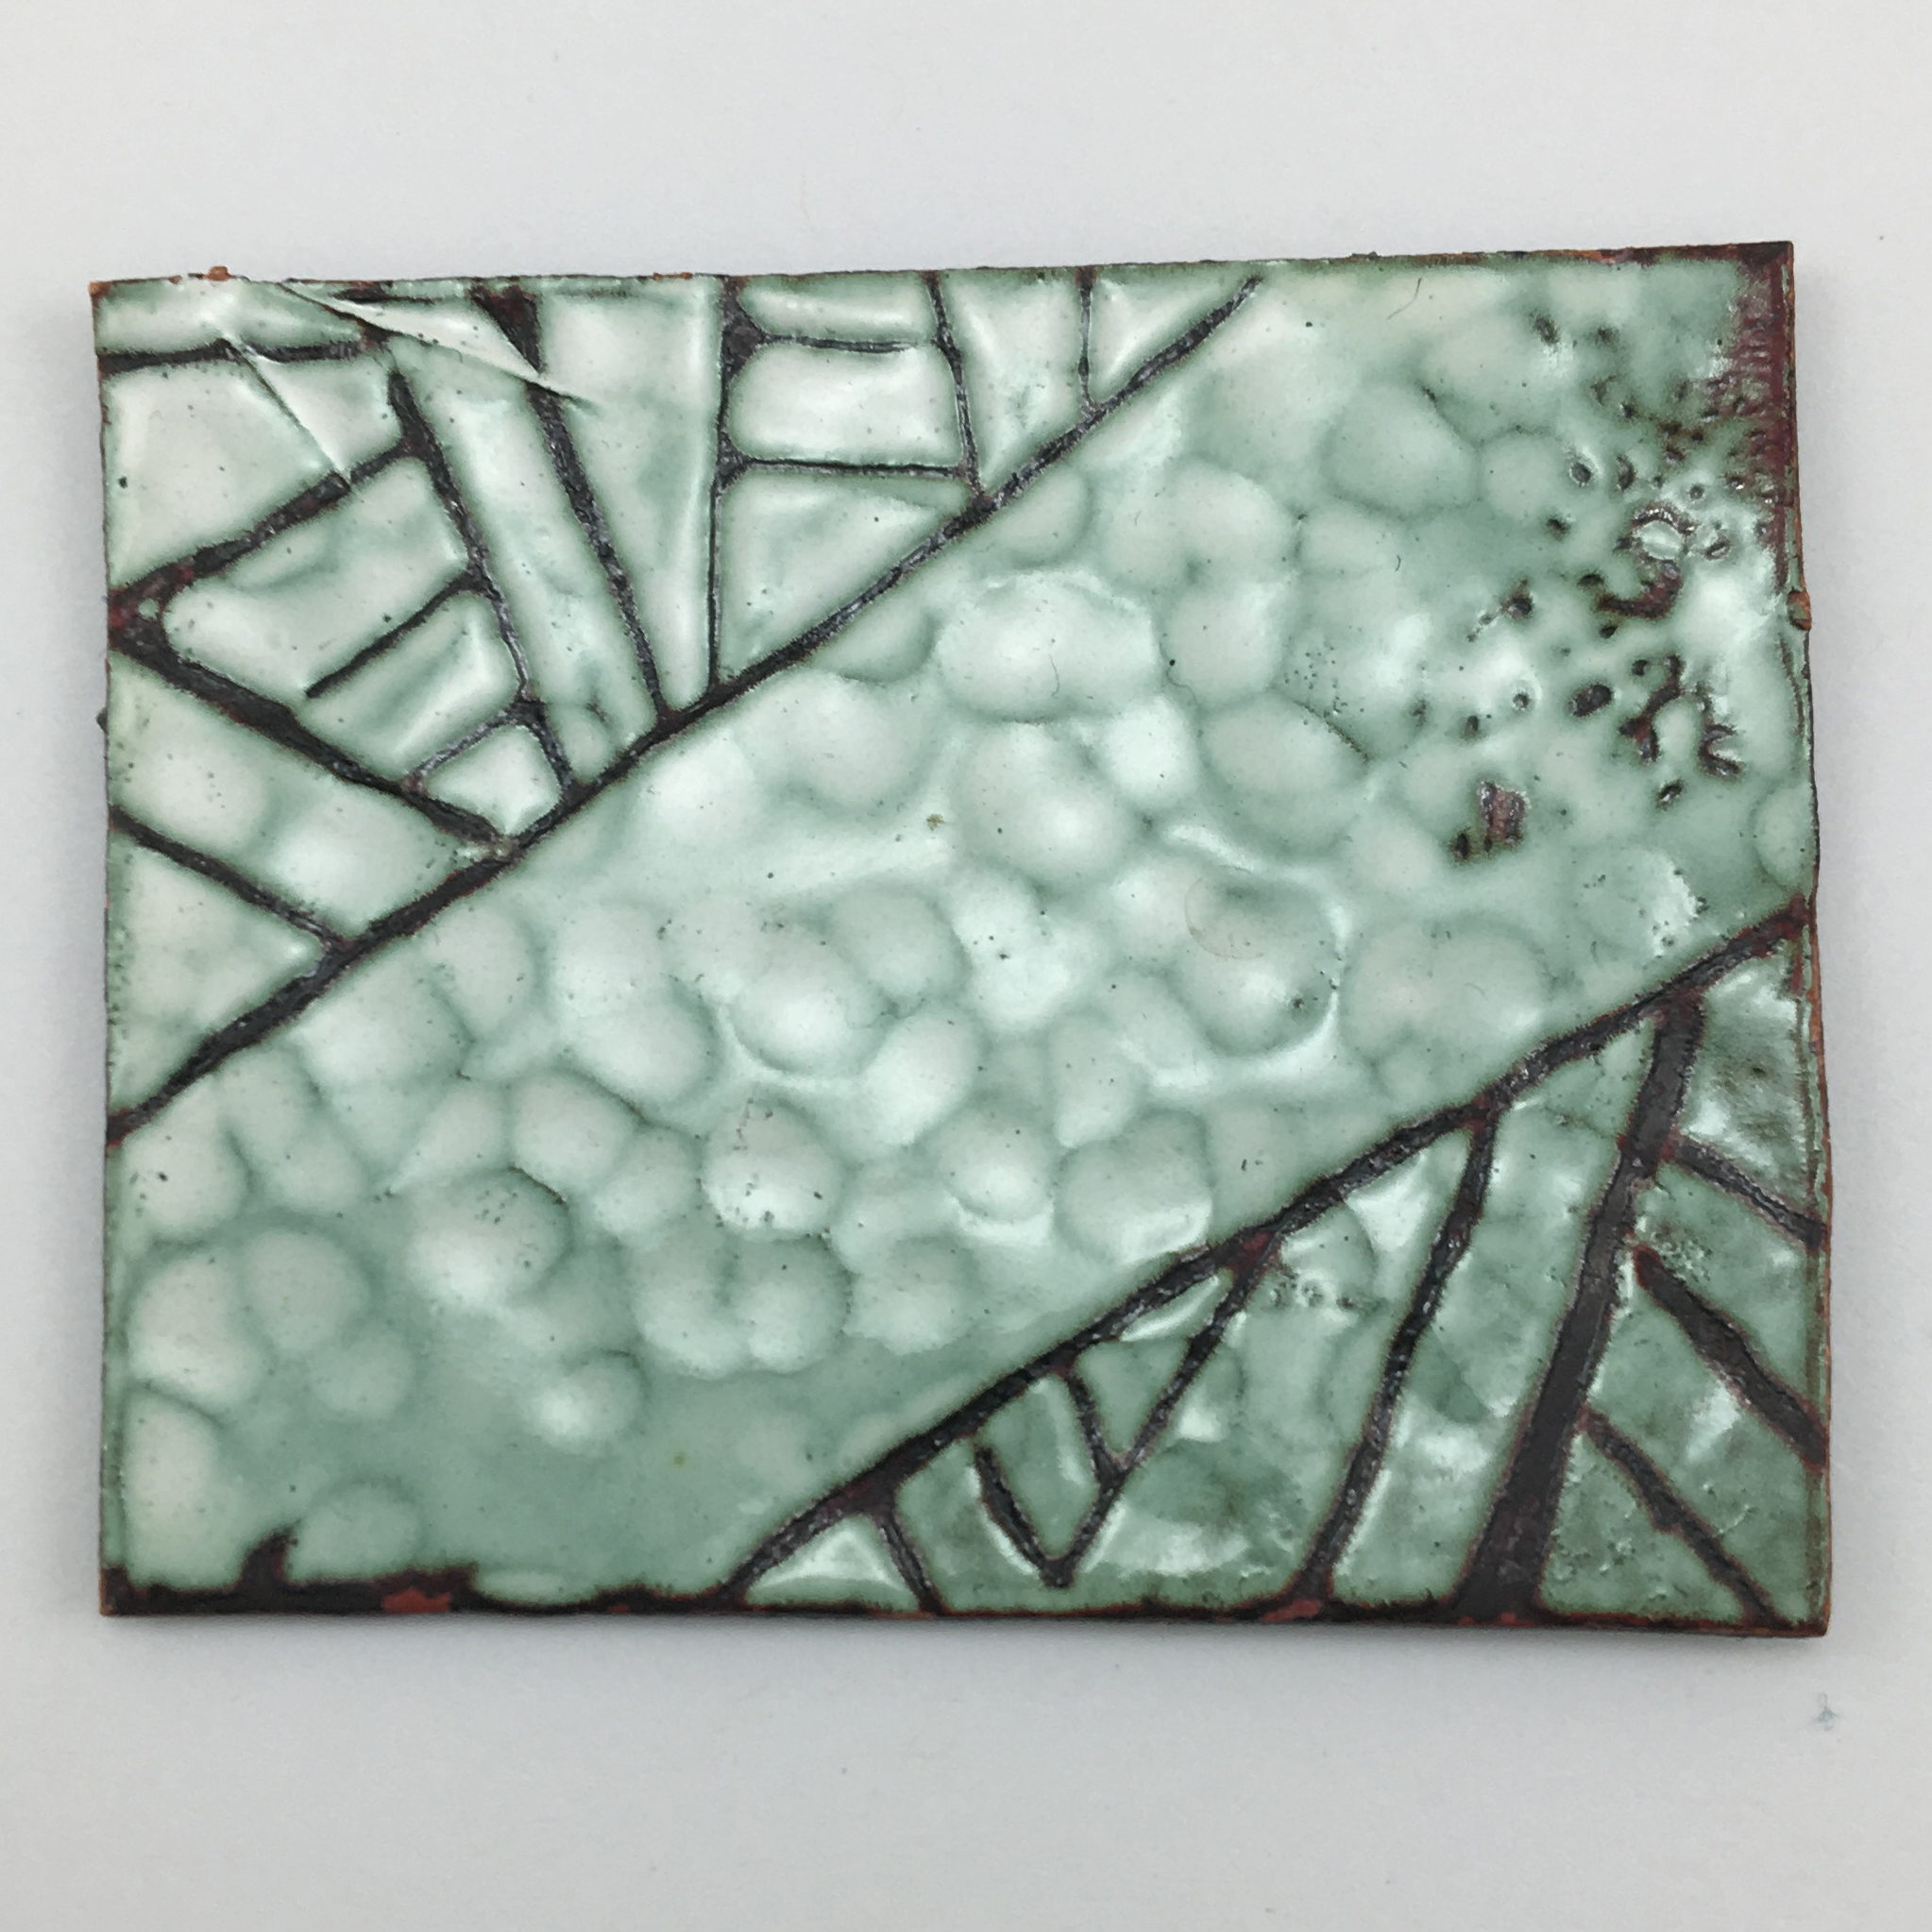 Exploring texture and sgraffito technique in white enamel.